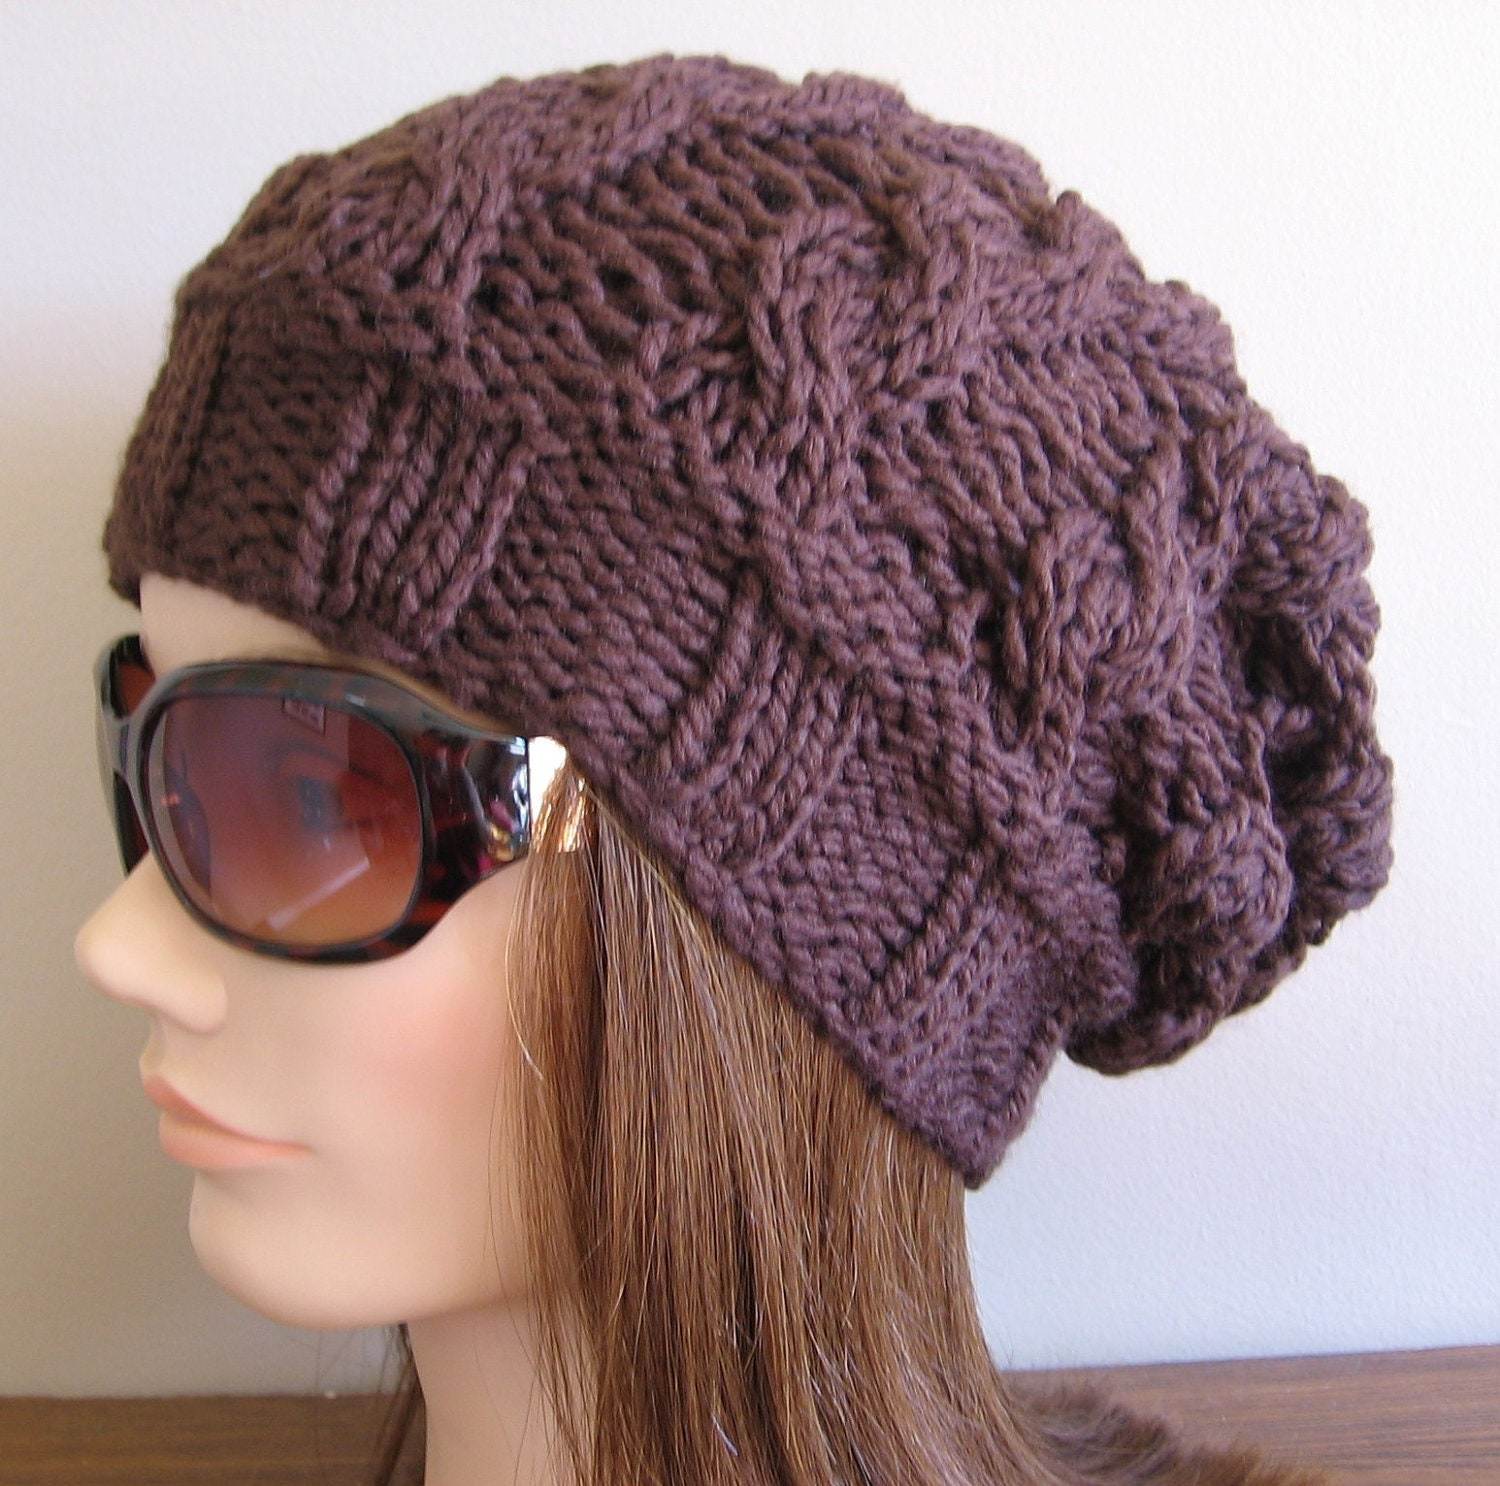 Slouchy Hat Knitting Patterns In the Loop Knitting - induced.info